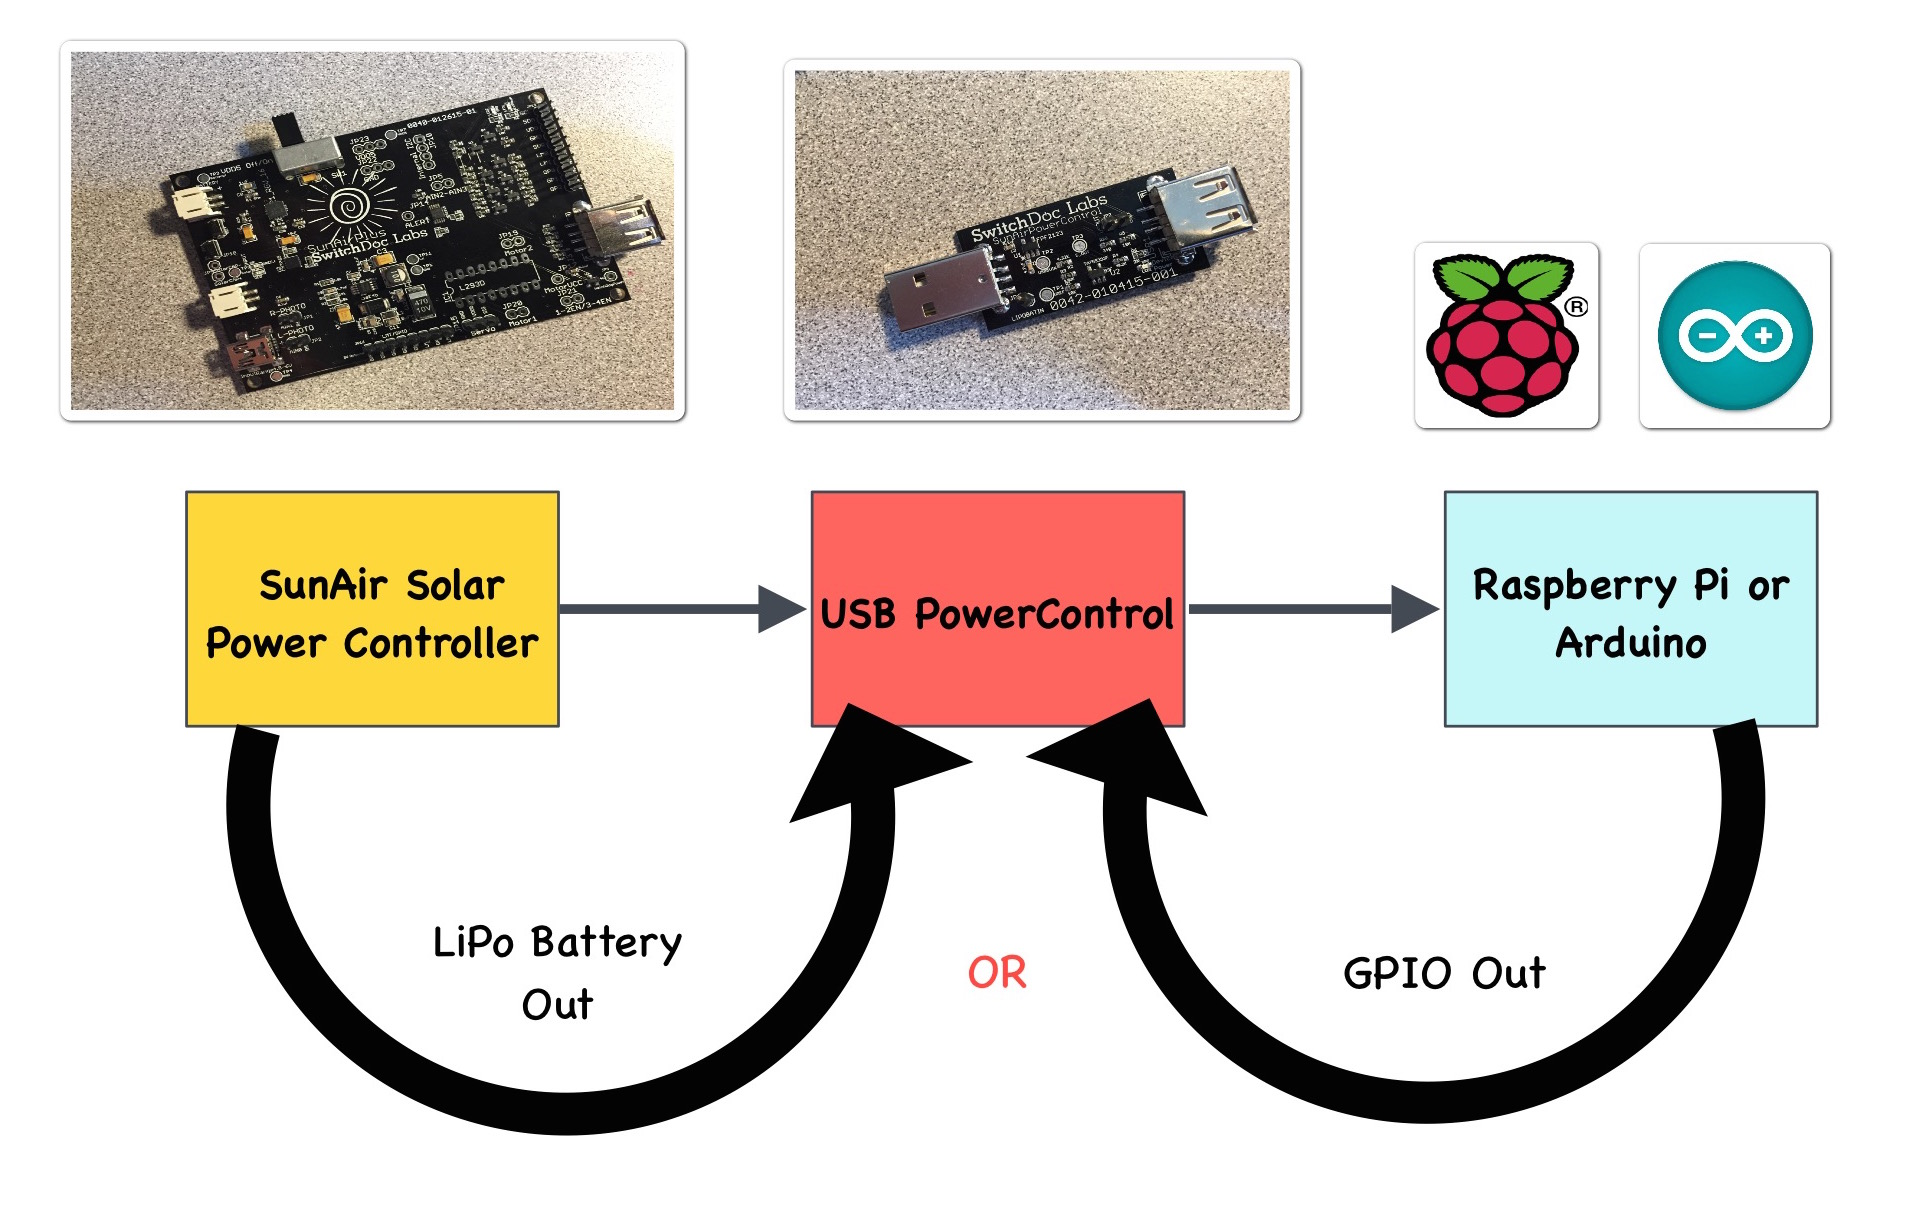 Usb Powercontrol Board For Raspberry Pi And Arduino Switchdoc Labs To Schematic Pinterest Together With Hub Diagram Application